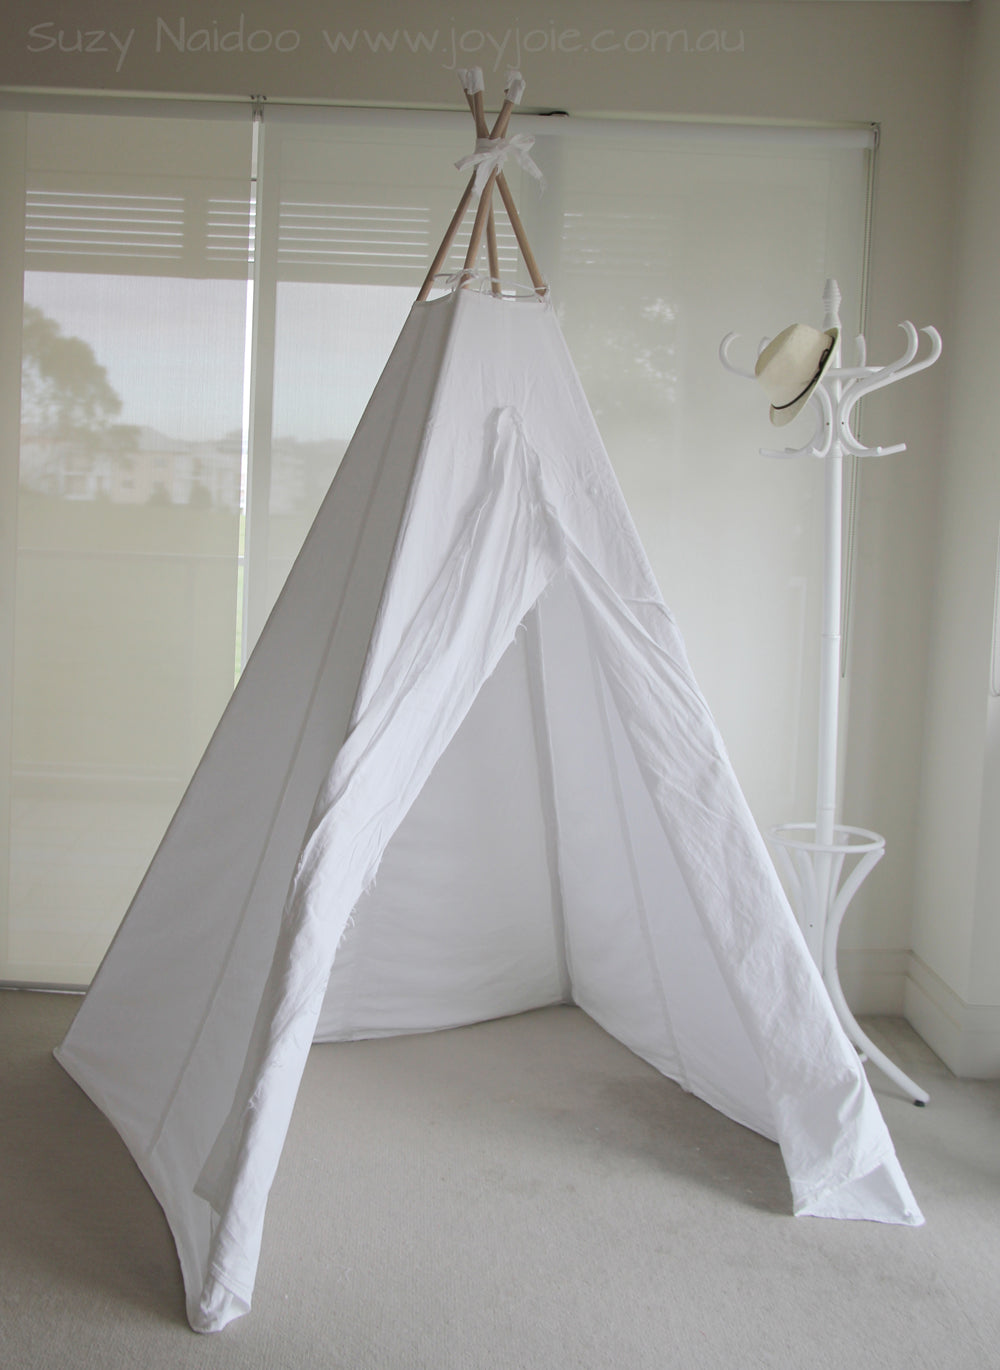 Whimsical tepee